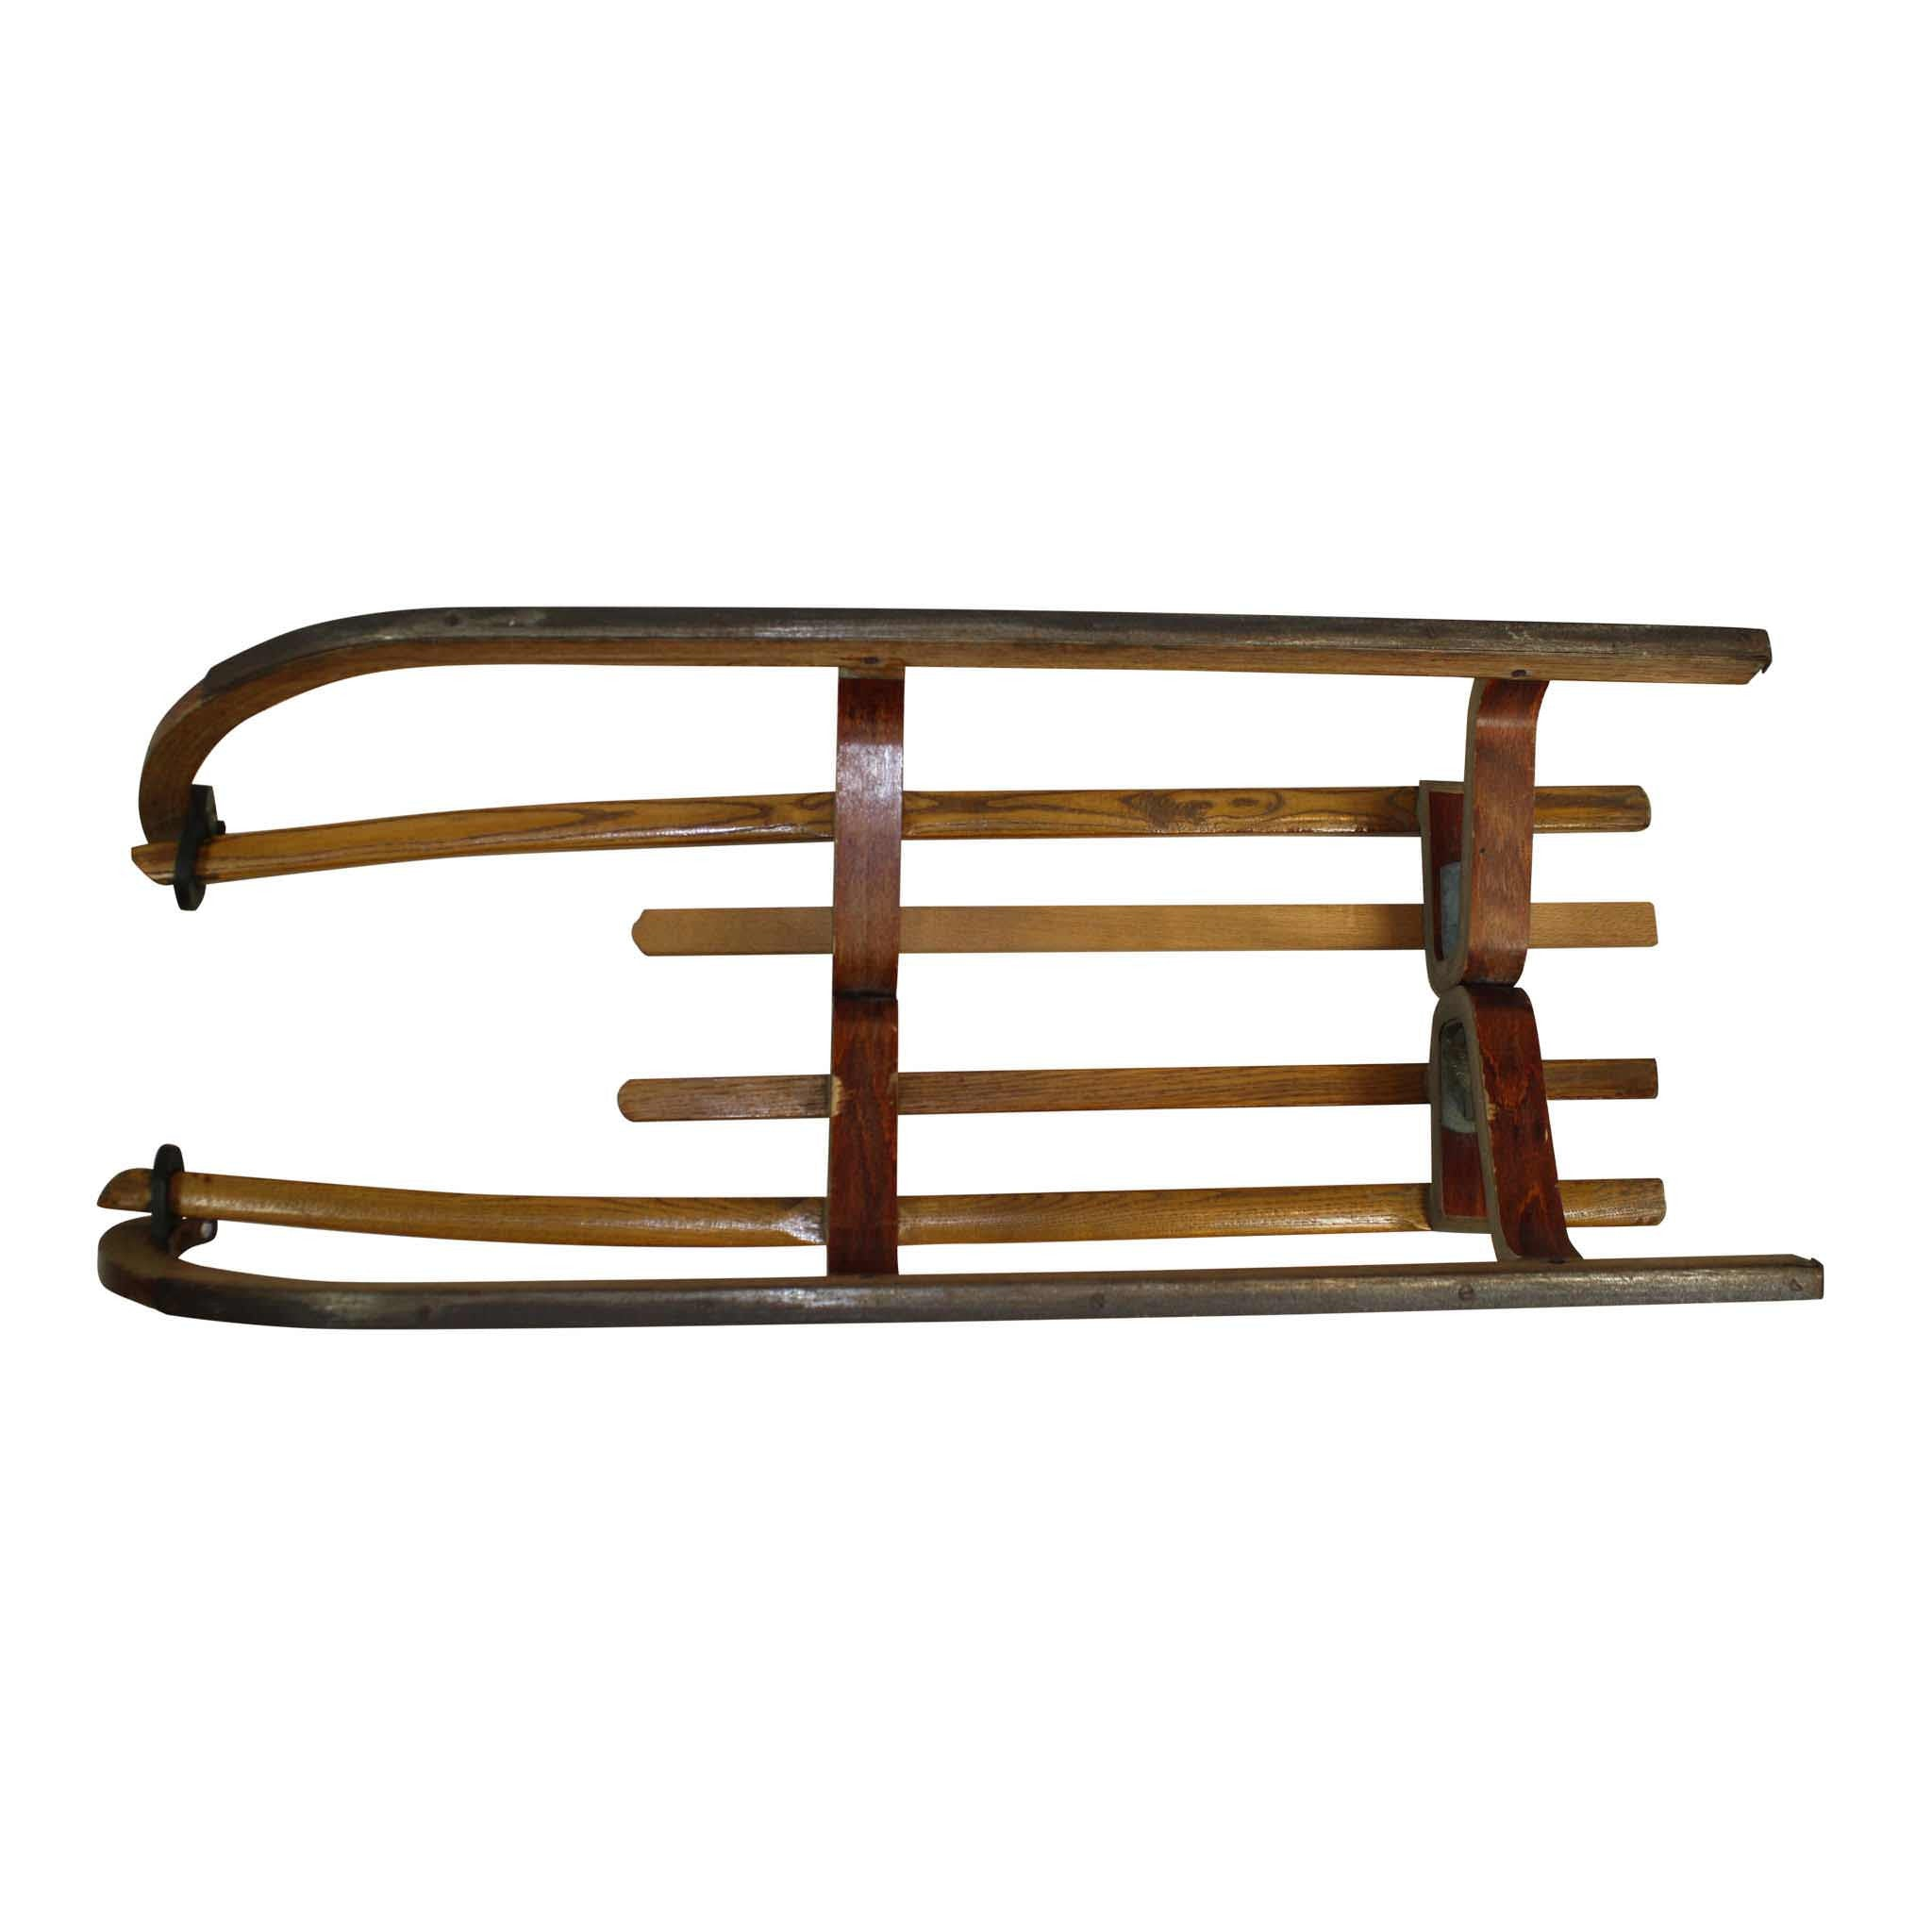 Dutch Wooden Sled